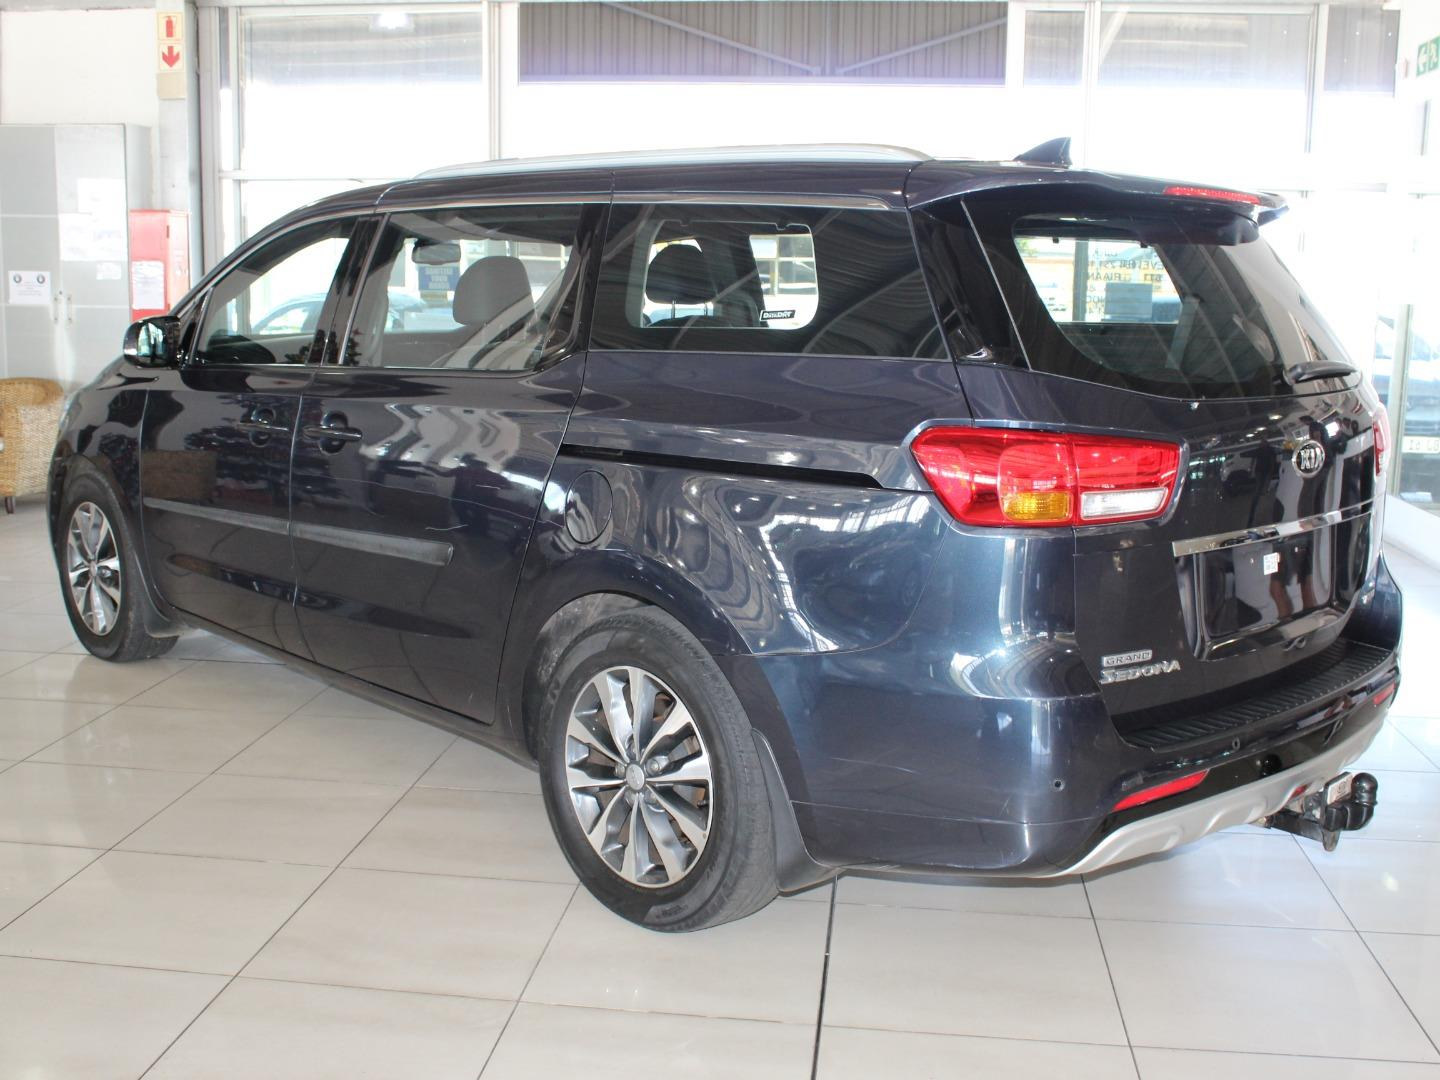 2015 Kia Grand Sedona 2.2CRDi SX- Picture 3